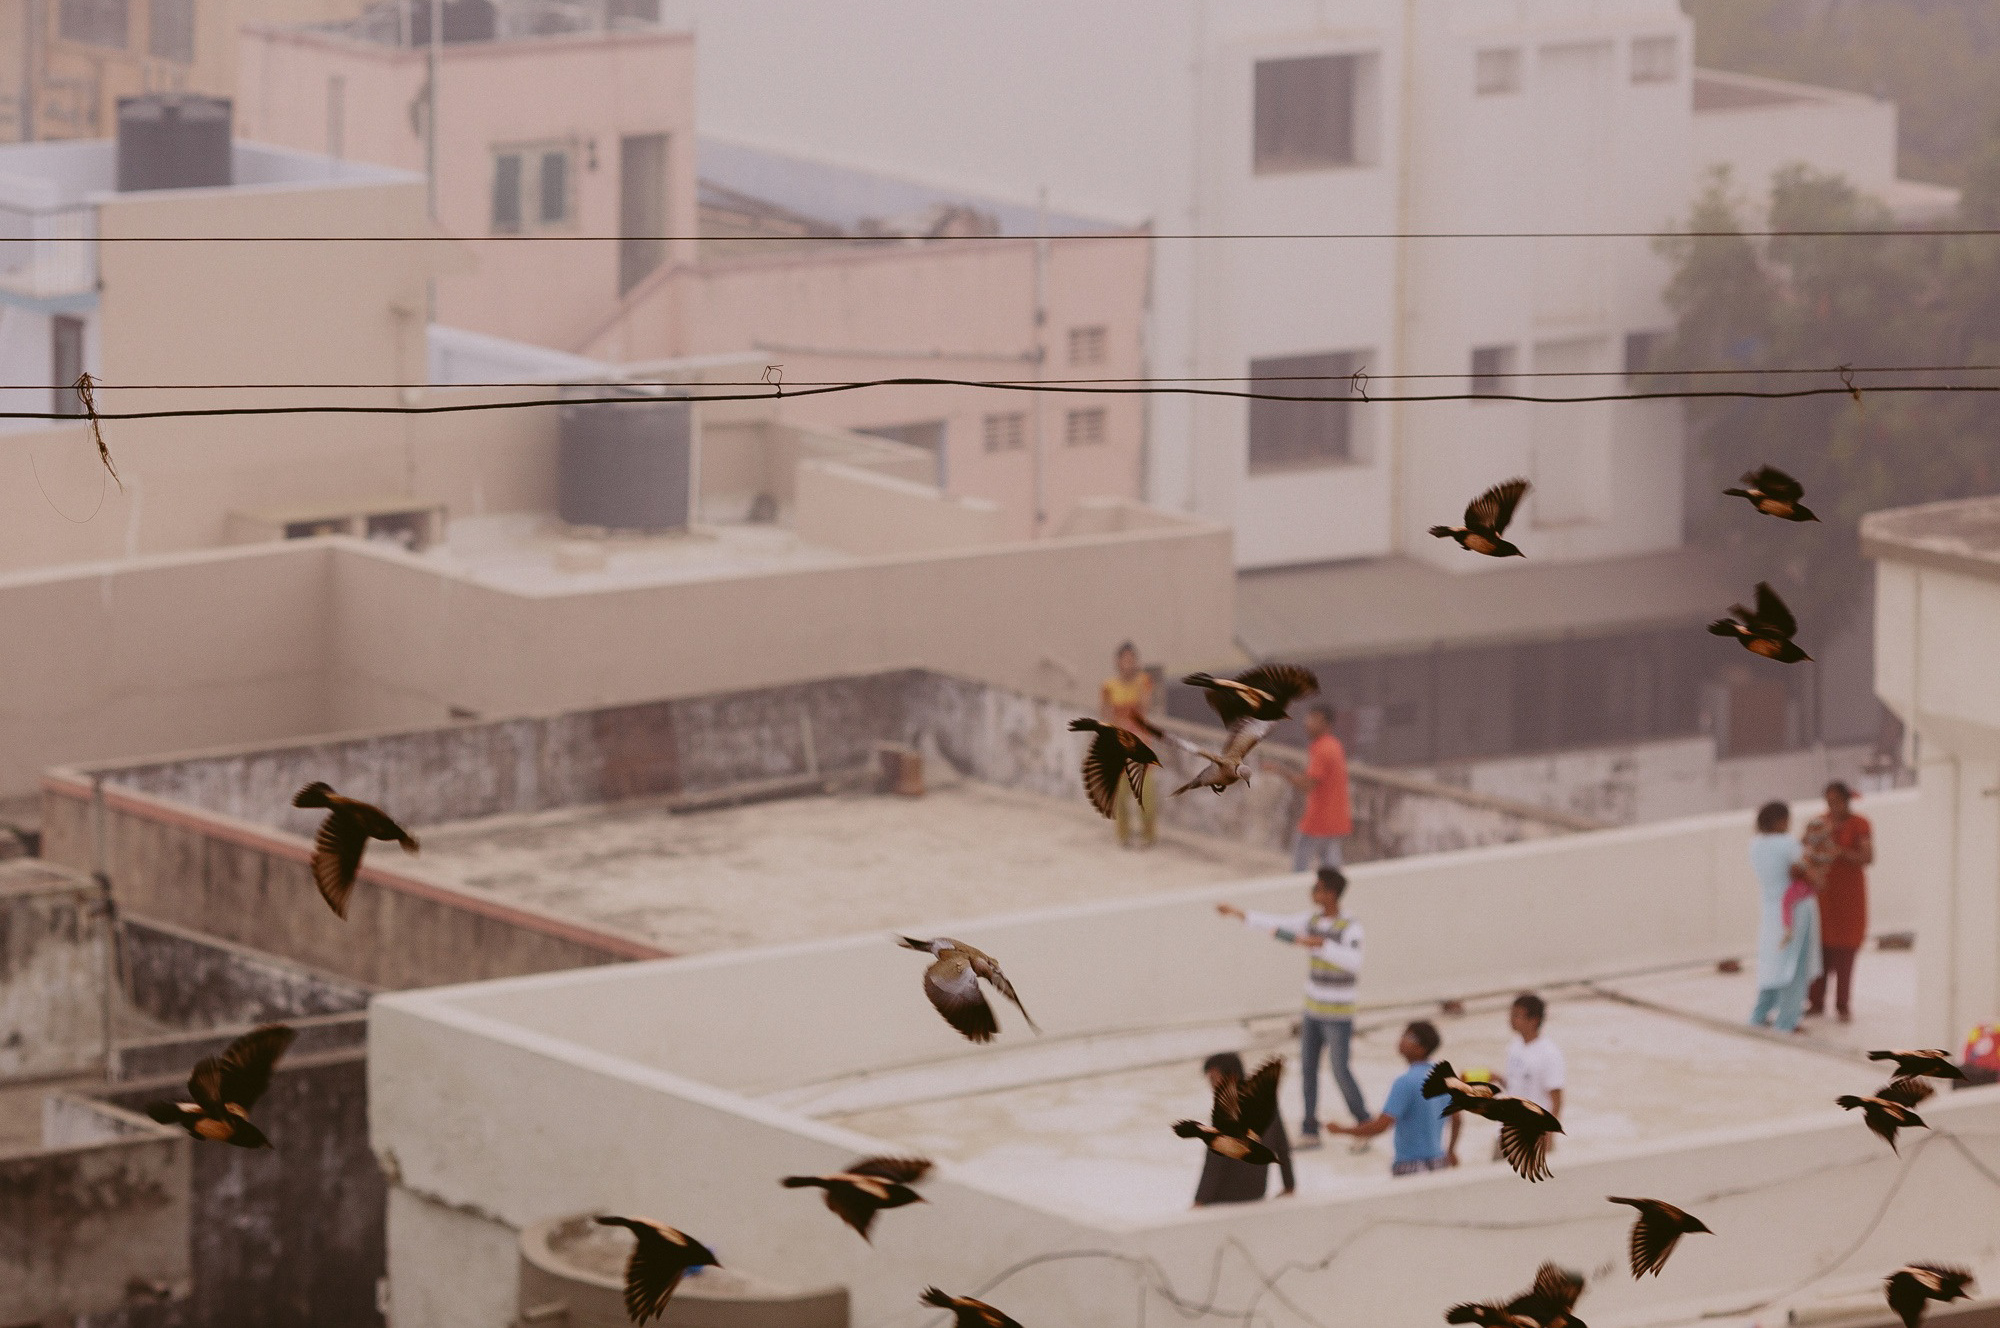 let s go fly a million kites and watch them cut each other a rooftop perch is perfect for kite flying nirav patel vsco artist initiative